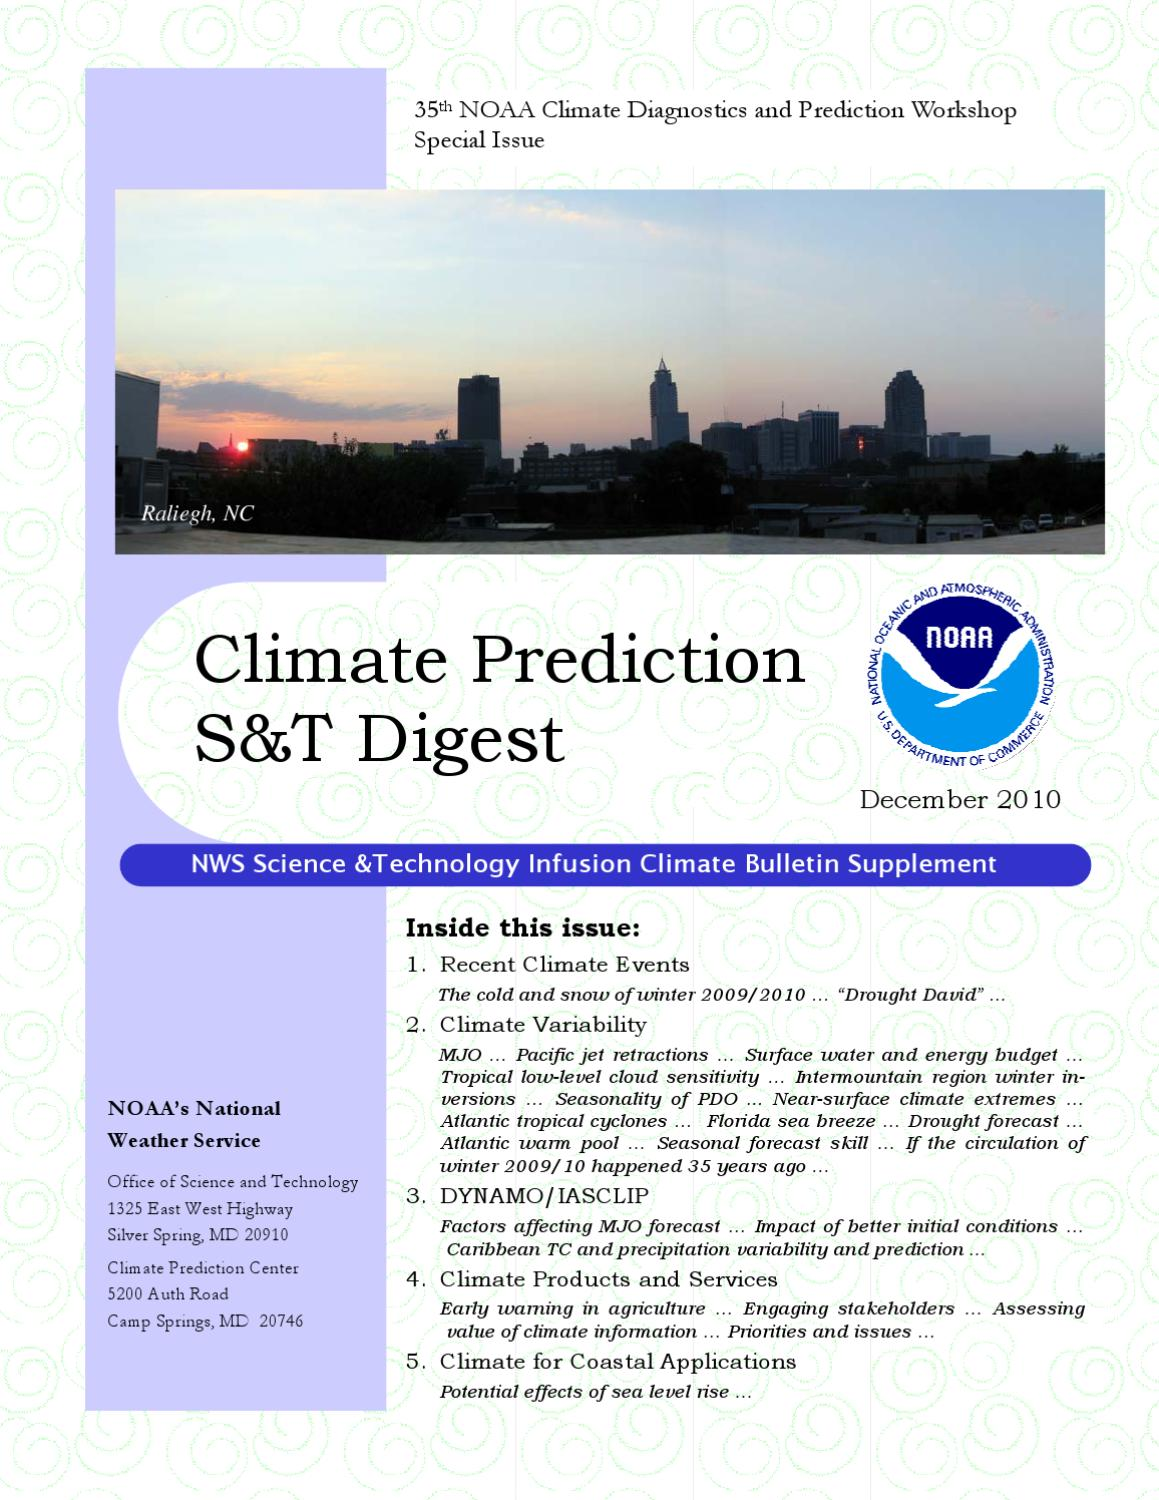 Climate Prediction S&T Digest, December 2010 by Jiayu Zhou - issuu